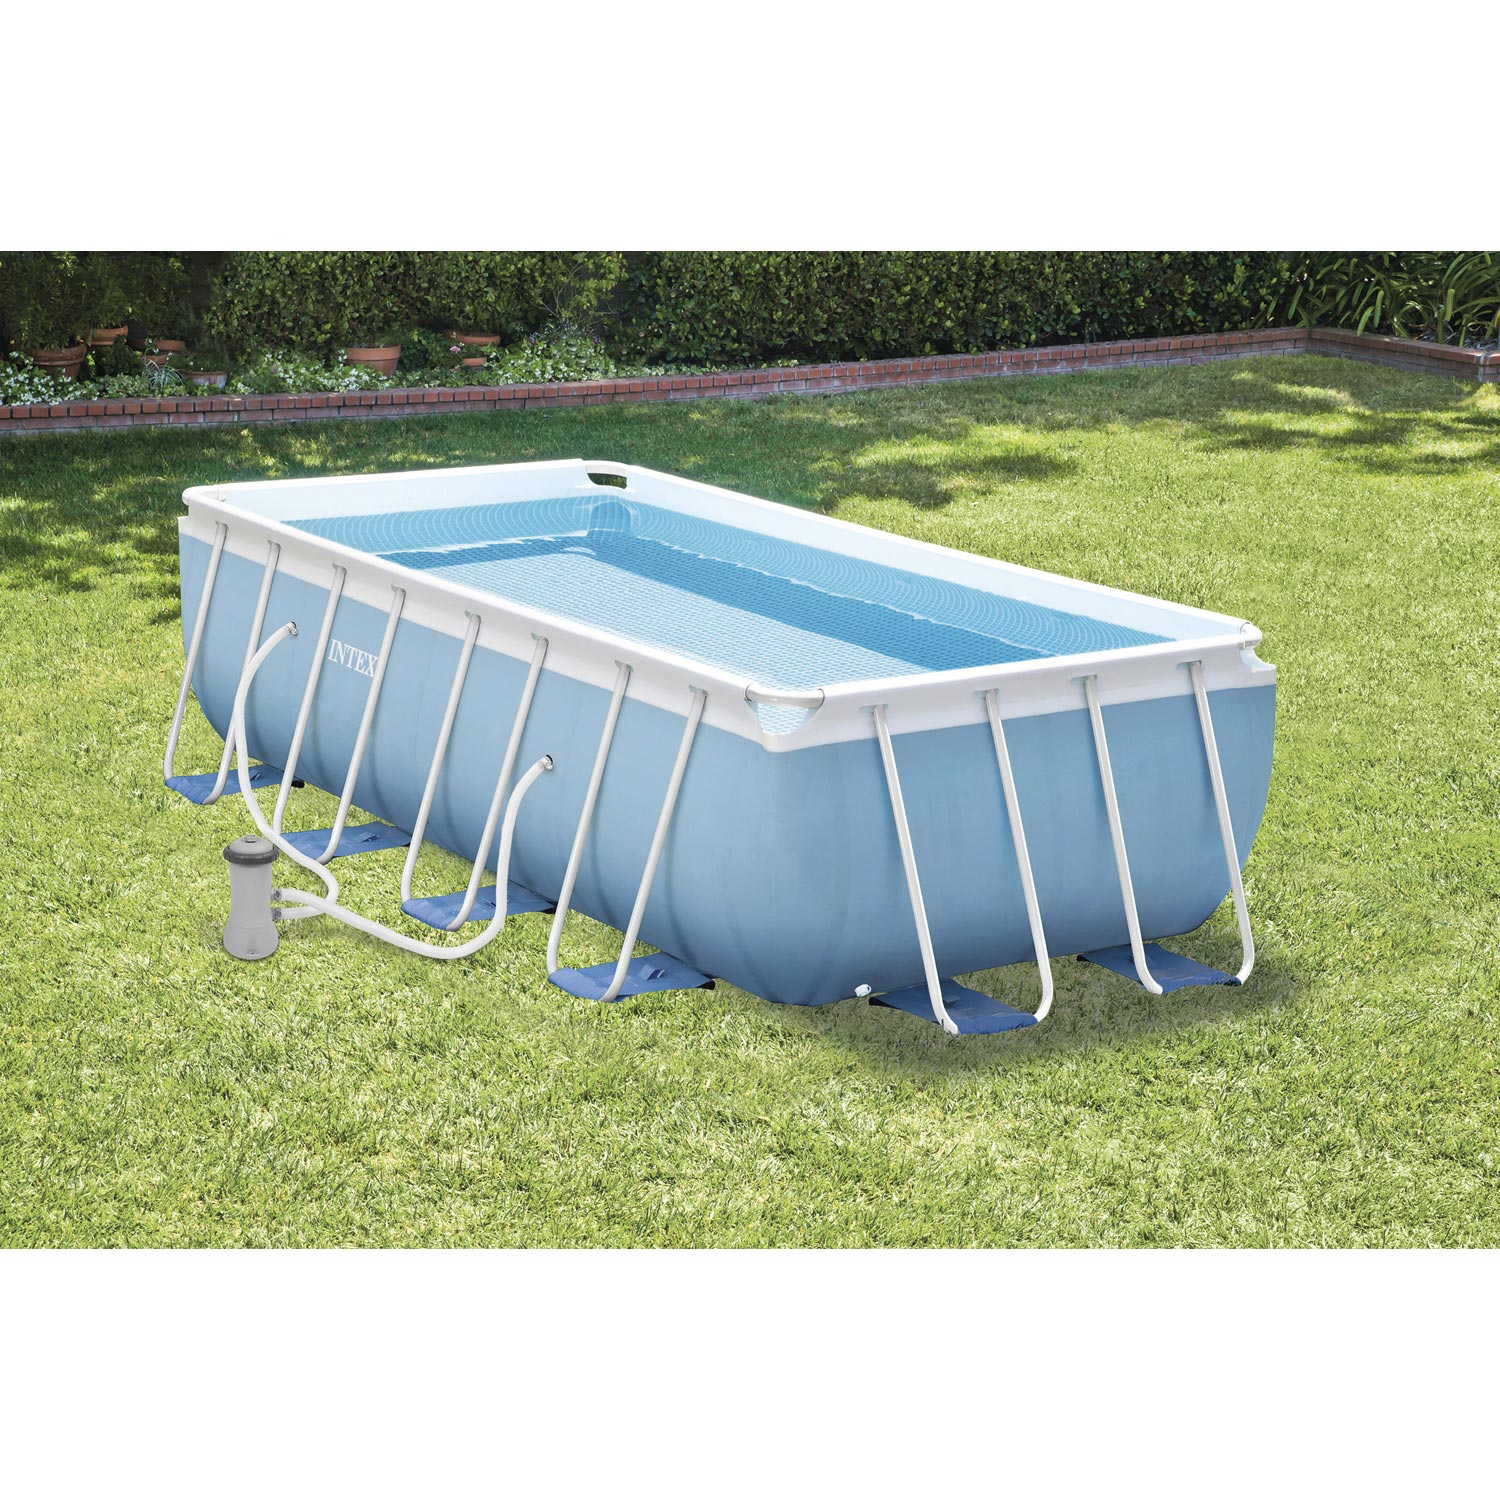 Piscine hors sol autoportante tubulaire prism frame intex for Leroy merlin bache piscine